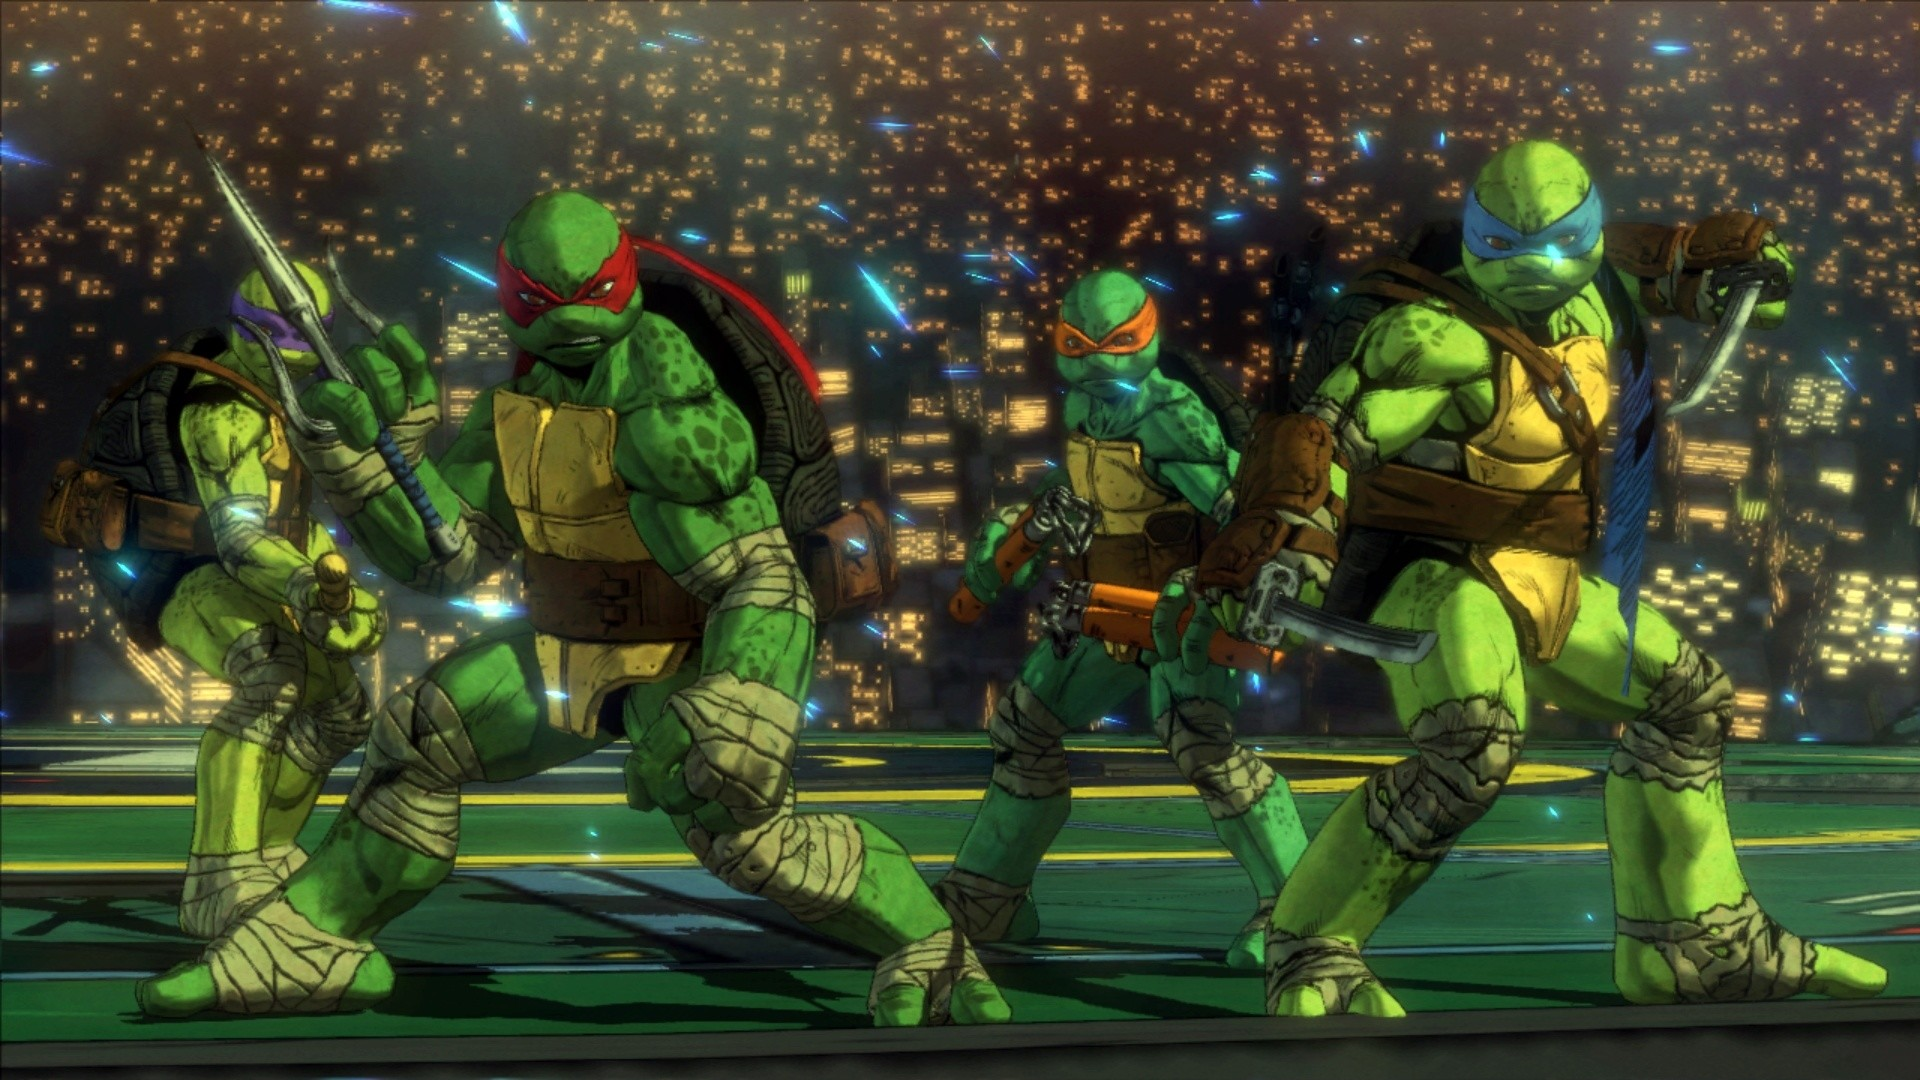 1920x1080 Teenage Mutant Ninja Turtles - Platinum Games-Titel plötzlich aus PSN &  Xbox Games Store entfernt - GamePro